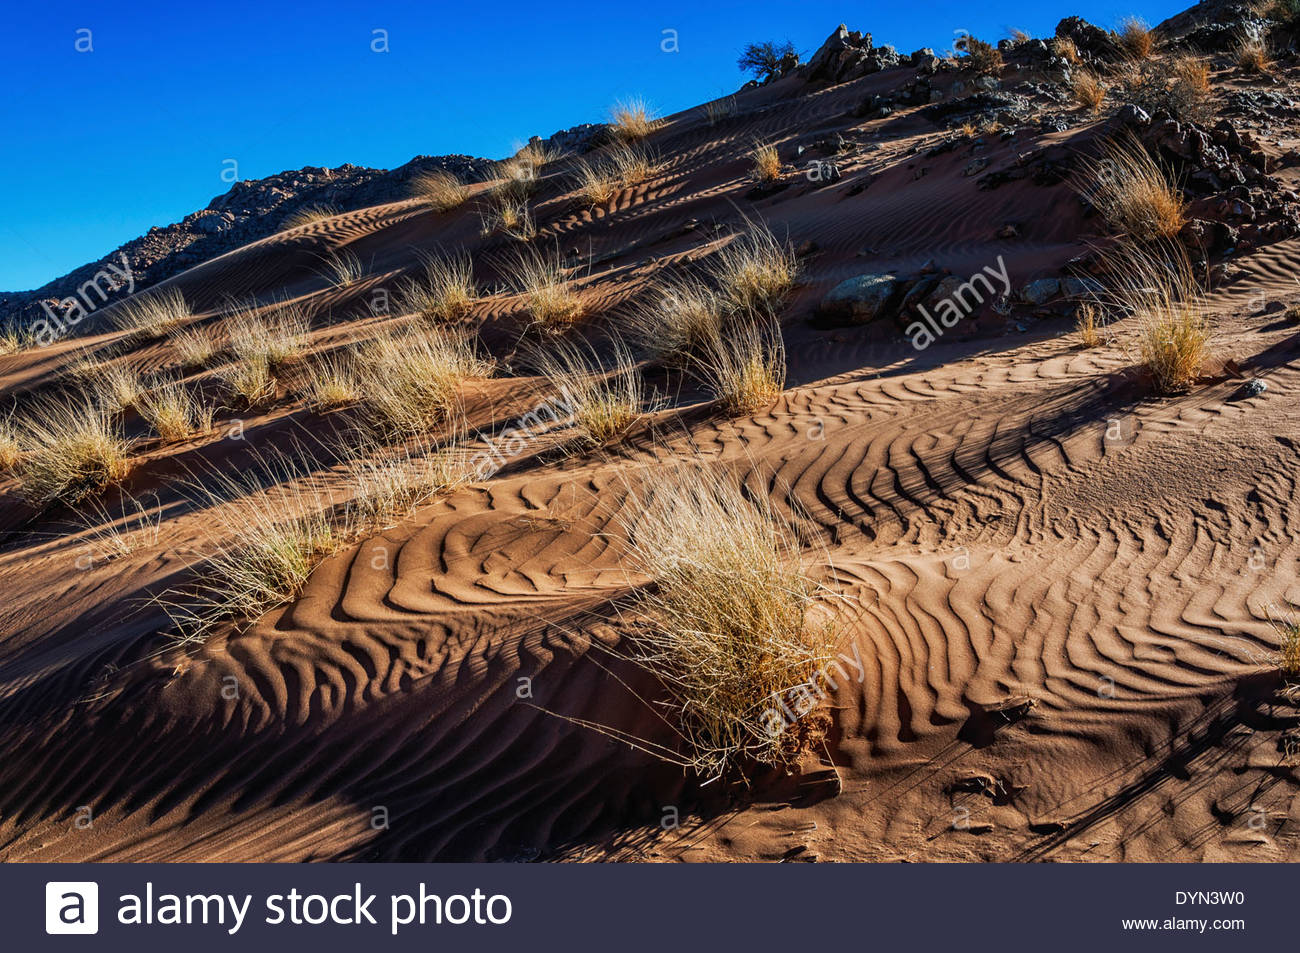 Tufts of grass grow on the dune slopes that formed on mountains in the Bushman Paradise area of the Namib desert - Stock Image